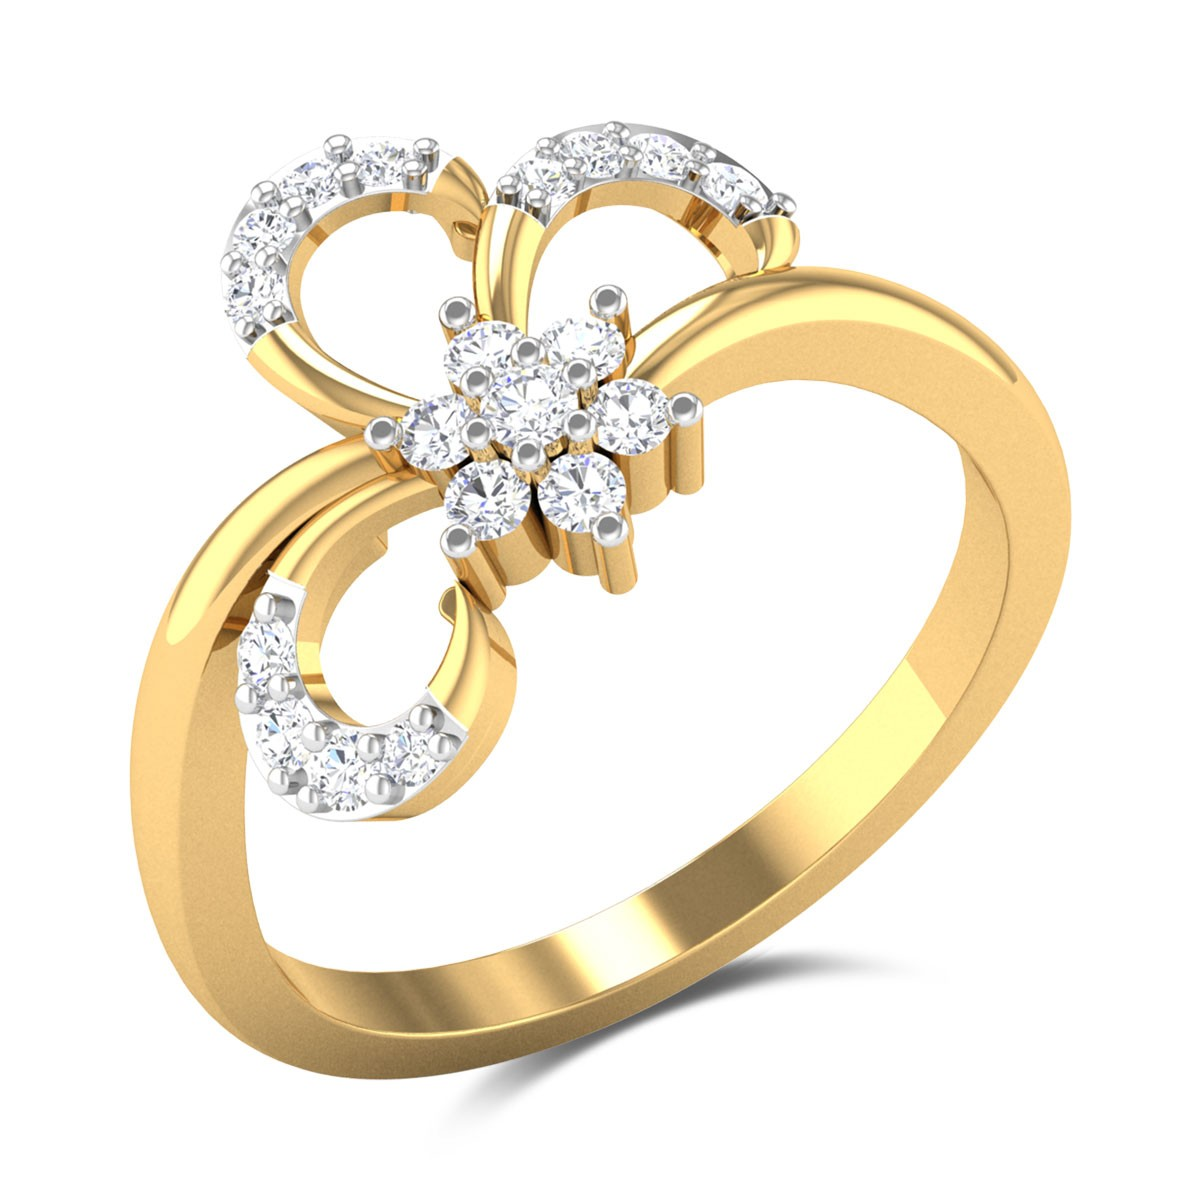 Earlene Diamond Ring